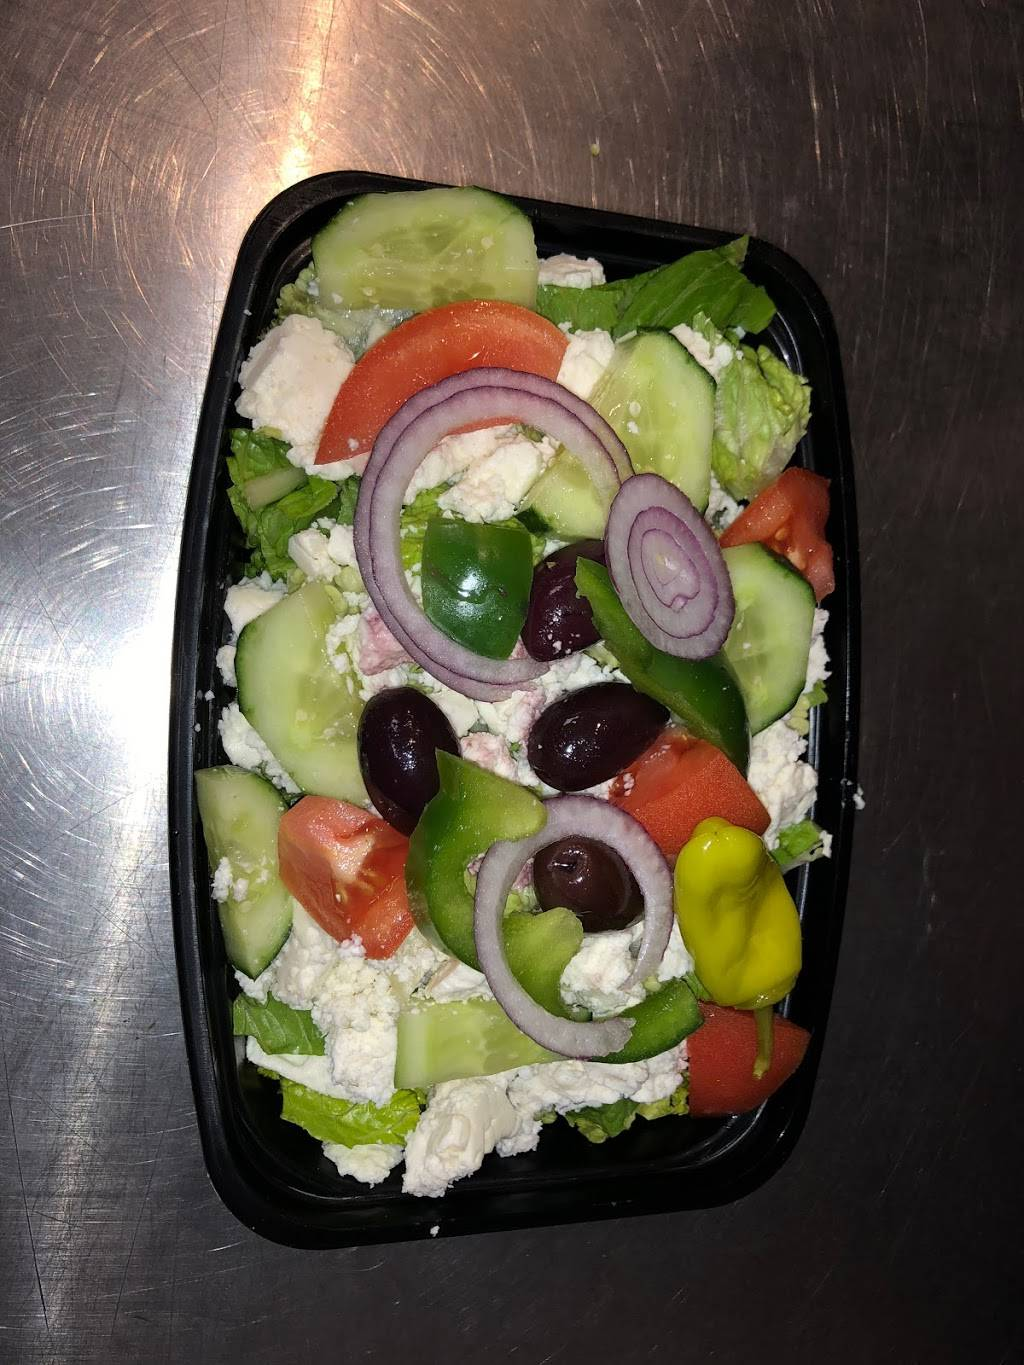 Ginos Pizzeria | meal delivery | 455 Court St, Portsmouth, VA 23704, USA | 7579982040 OR +1 757-998-2040